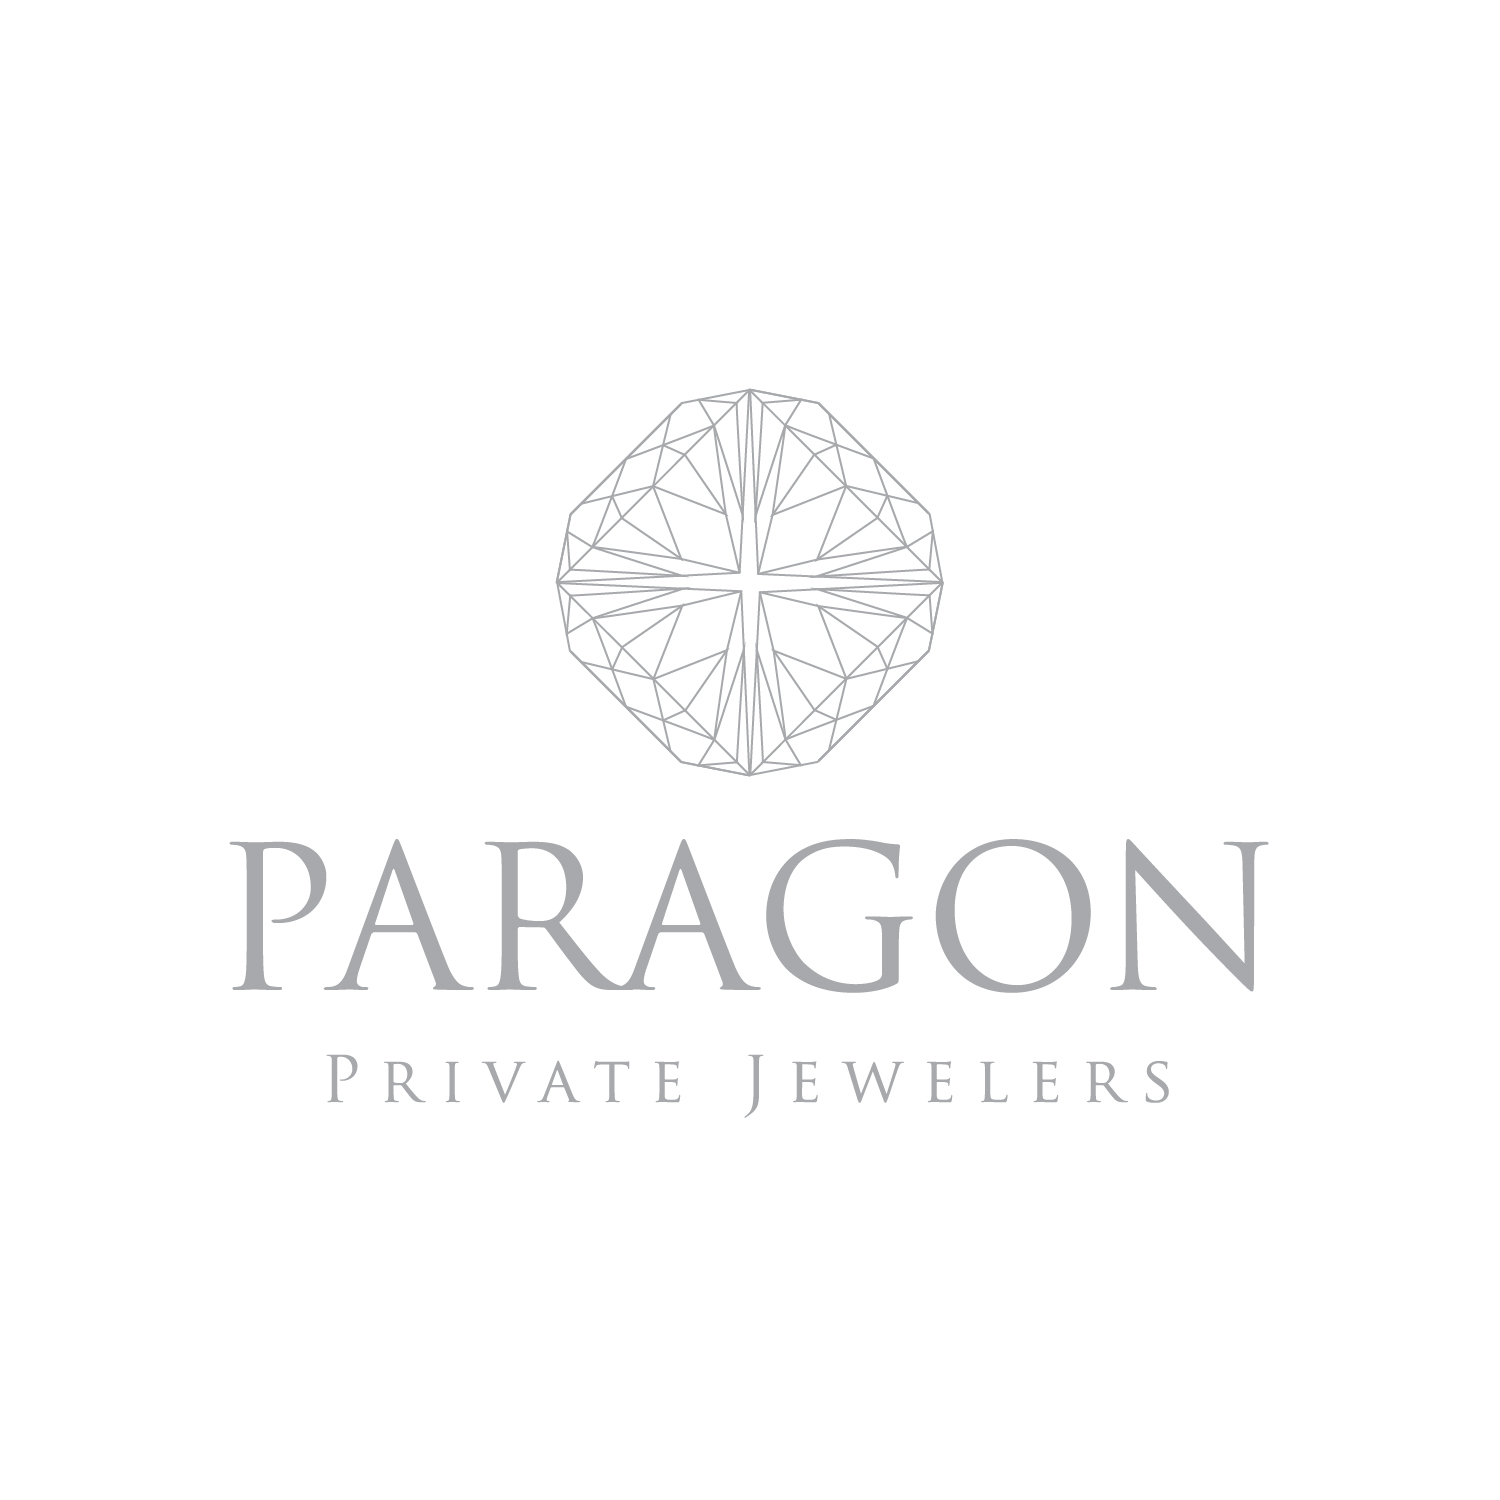 Paragon Private Jewelers